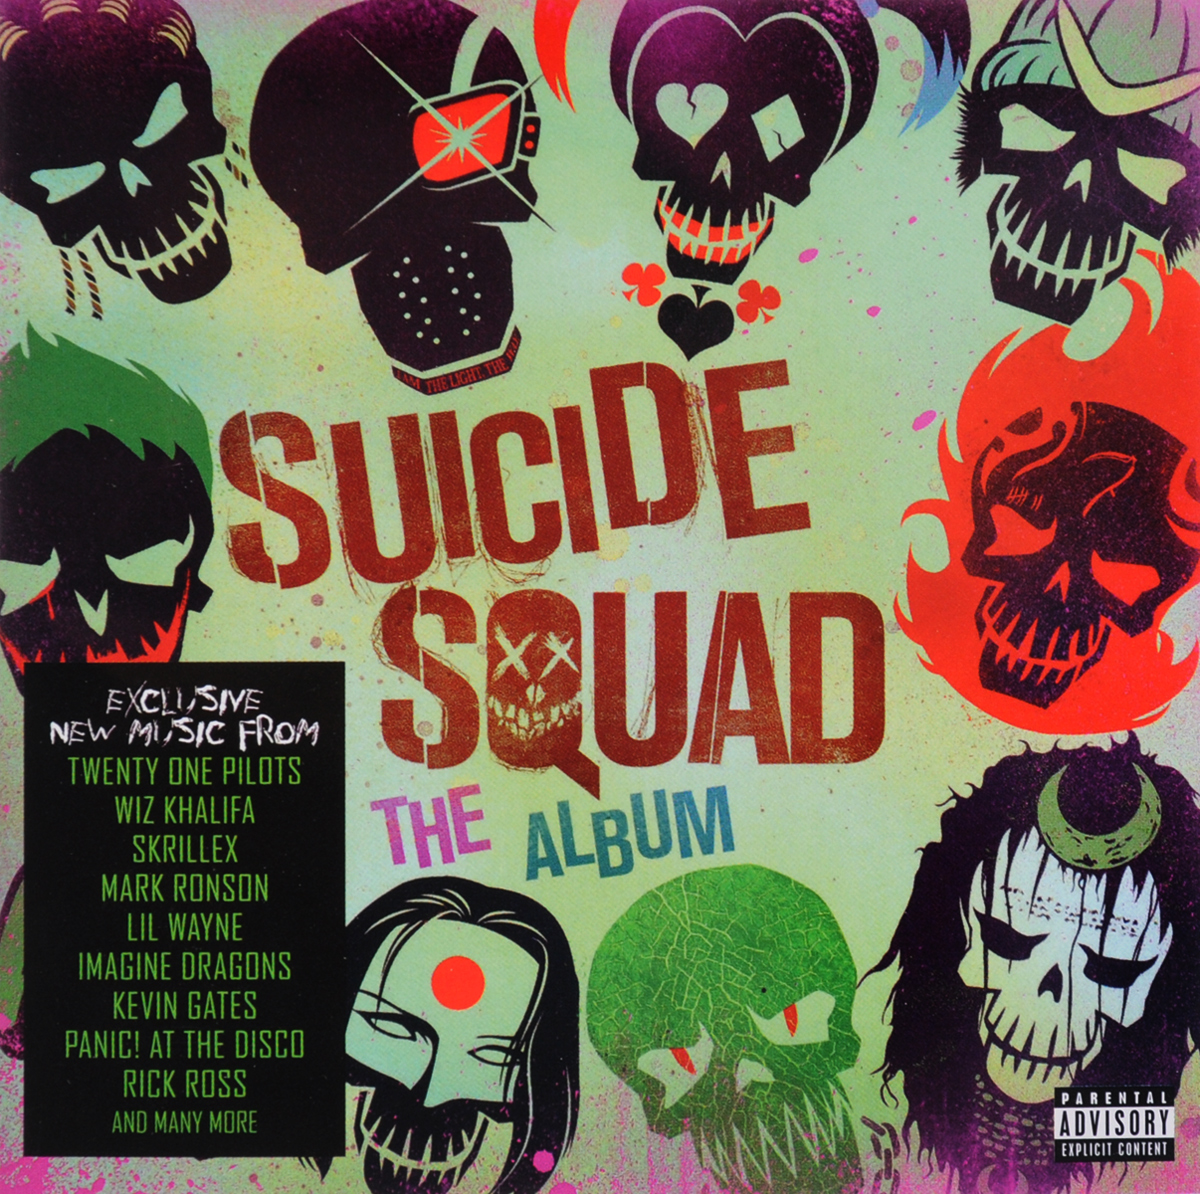 Skrillex,Лил Вэйн,Twenty One Pilots,G-Eazy,Эминем,Panic! At The Disco,Creedence Clearwater Revival,Action Bronson,Марк Ронсон,Дэн Ауэрбах Suicide Squad. The Album